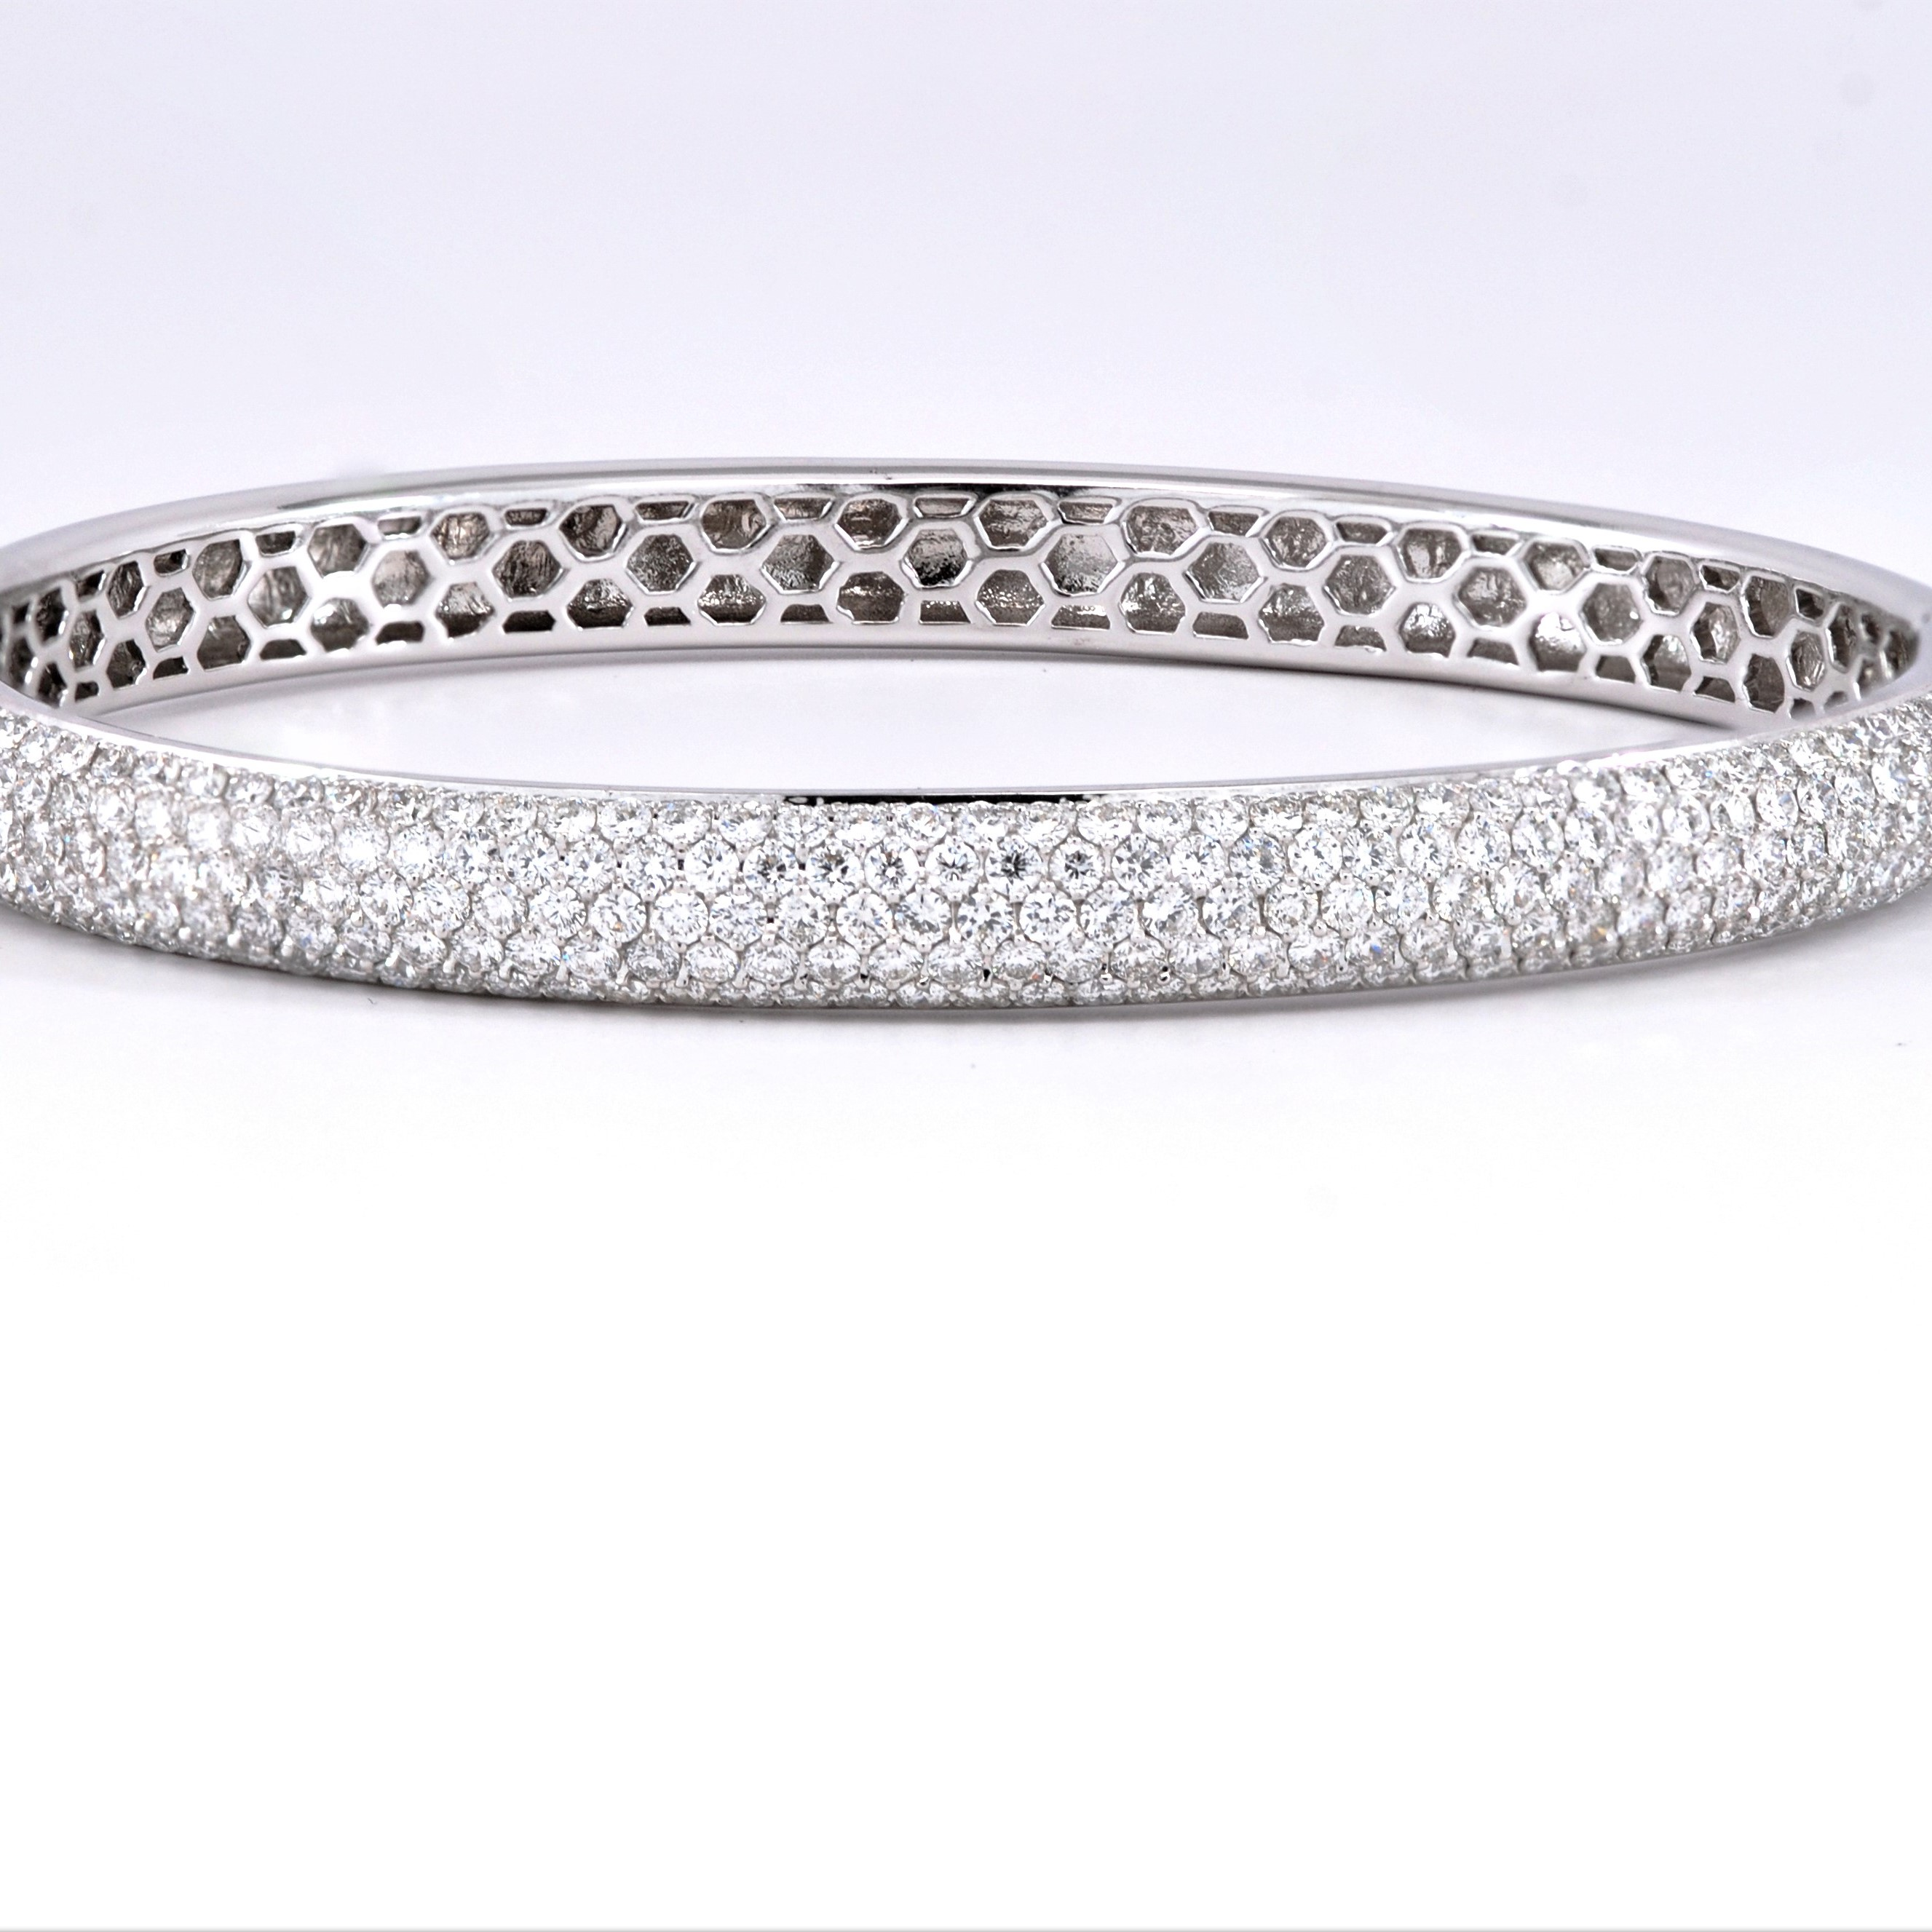 bangles house white bangle gold bracelet of silver twist design diamond product